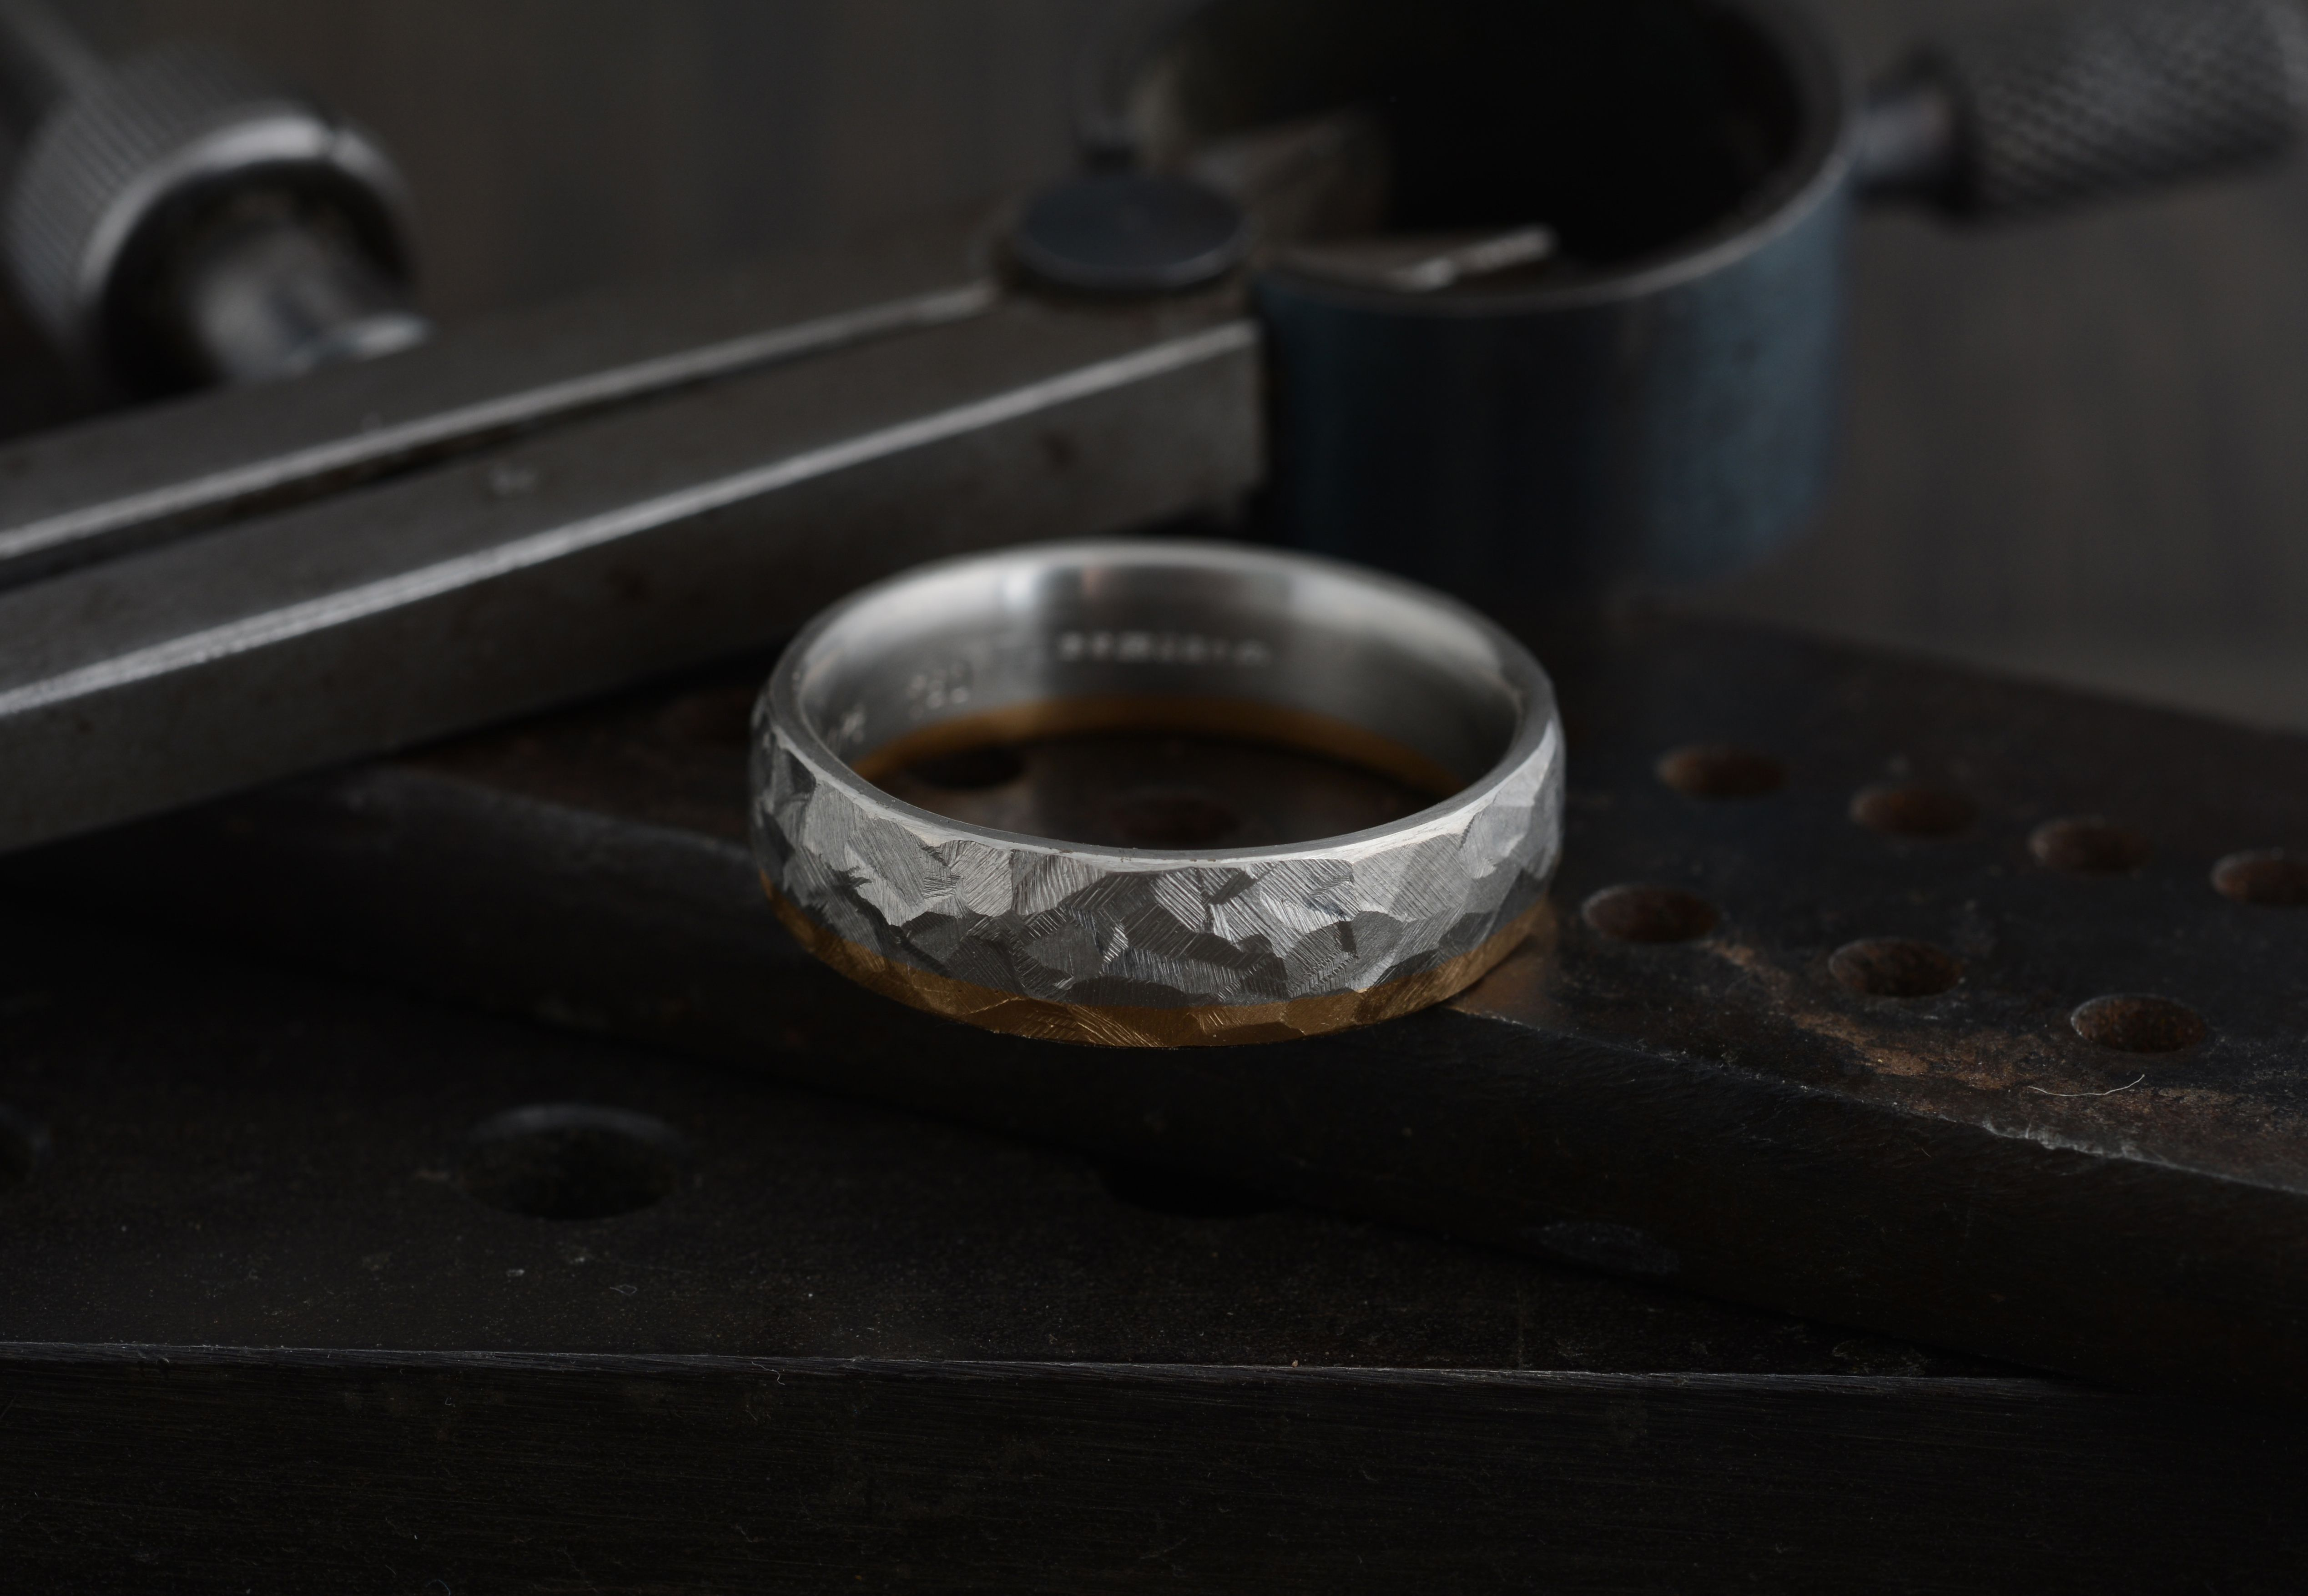 Our hammered wedding bands can be made in a variety of metals including 18 carat white, yellow, rose gold, and platinum or as seen below, a combination of two. What would you choose?   #hammeredband #weddingring #alternativeweddingring #contemporaryjewellery #finejewellery #handcraftedjewellery #handmadelondon